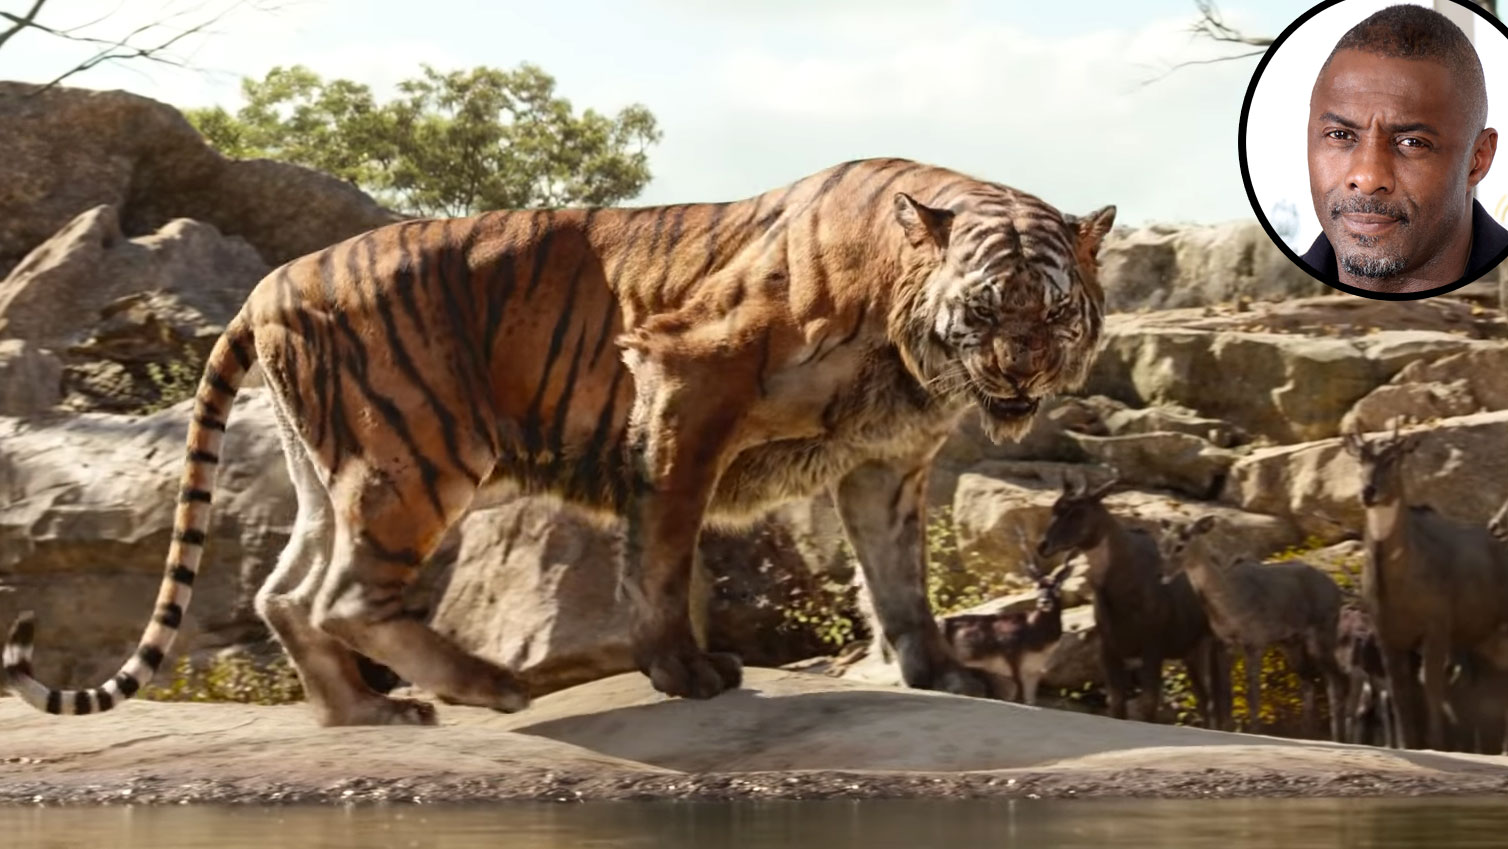 Idris Elba Shere Khan Jungle Book Voice Over Disney and Pixar Characters - Shere Khan in The Jungle Book (2016)